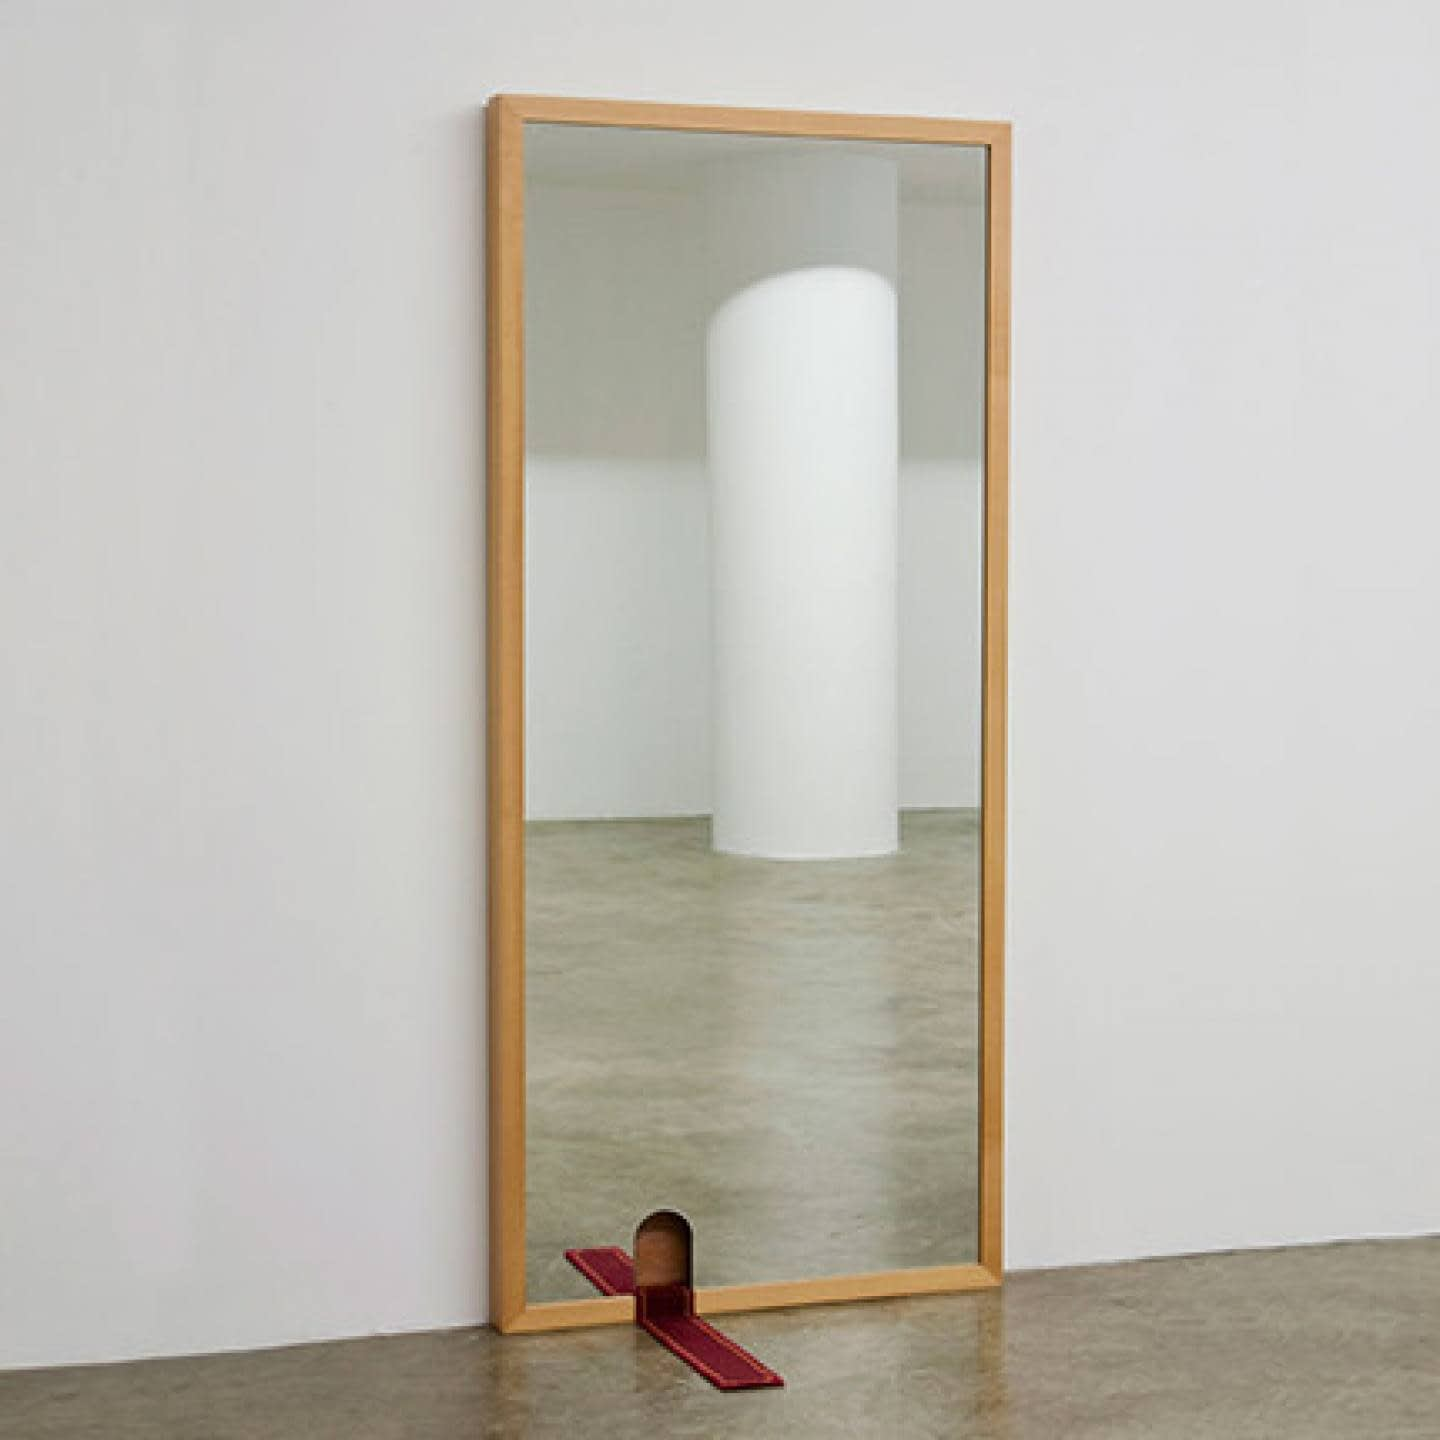 Mirror VII_ Ron Gilad